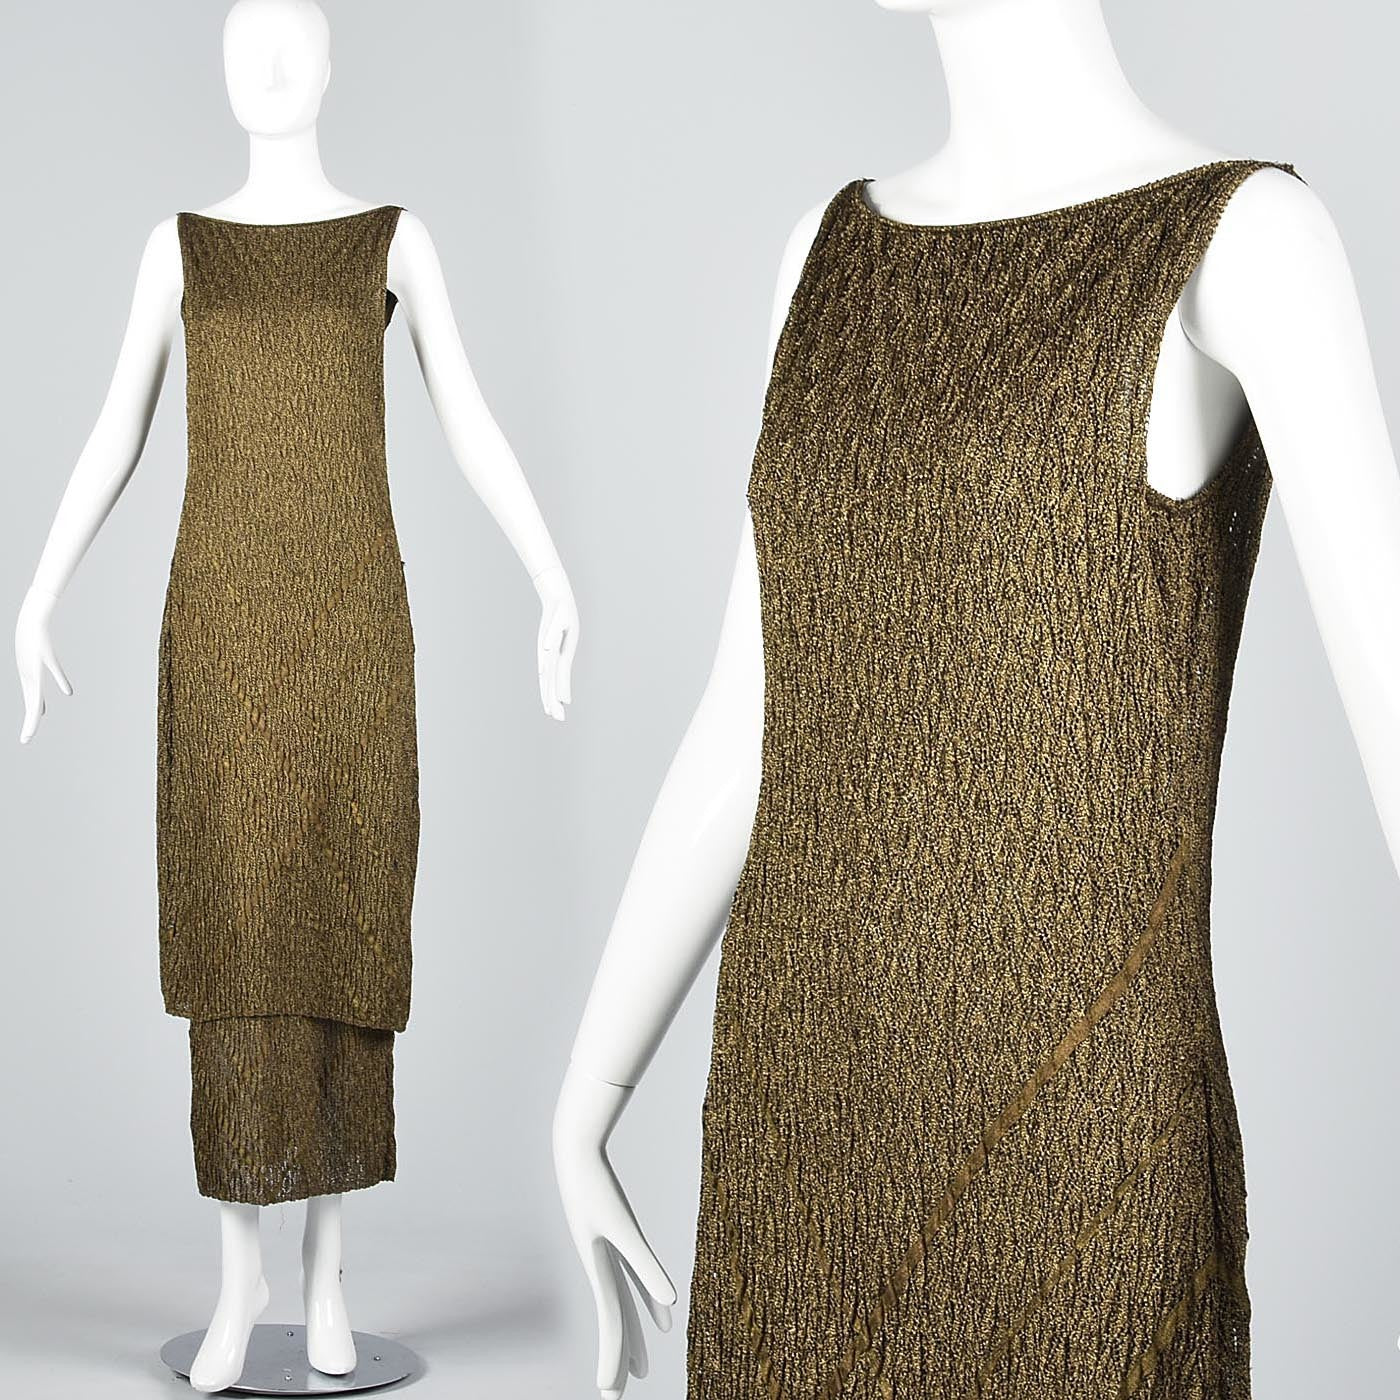 Christian Dior Boutique John Galliano Metallic Gold Evening Dress